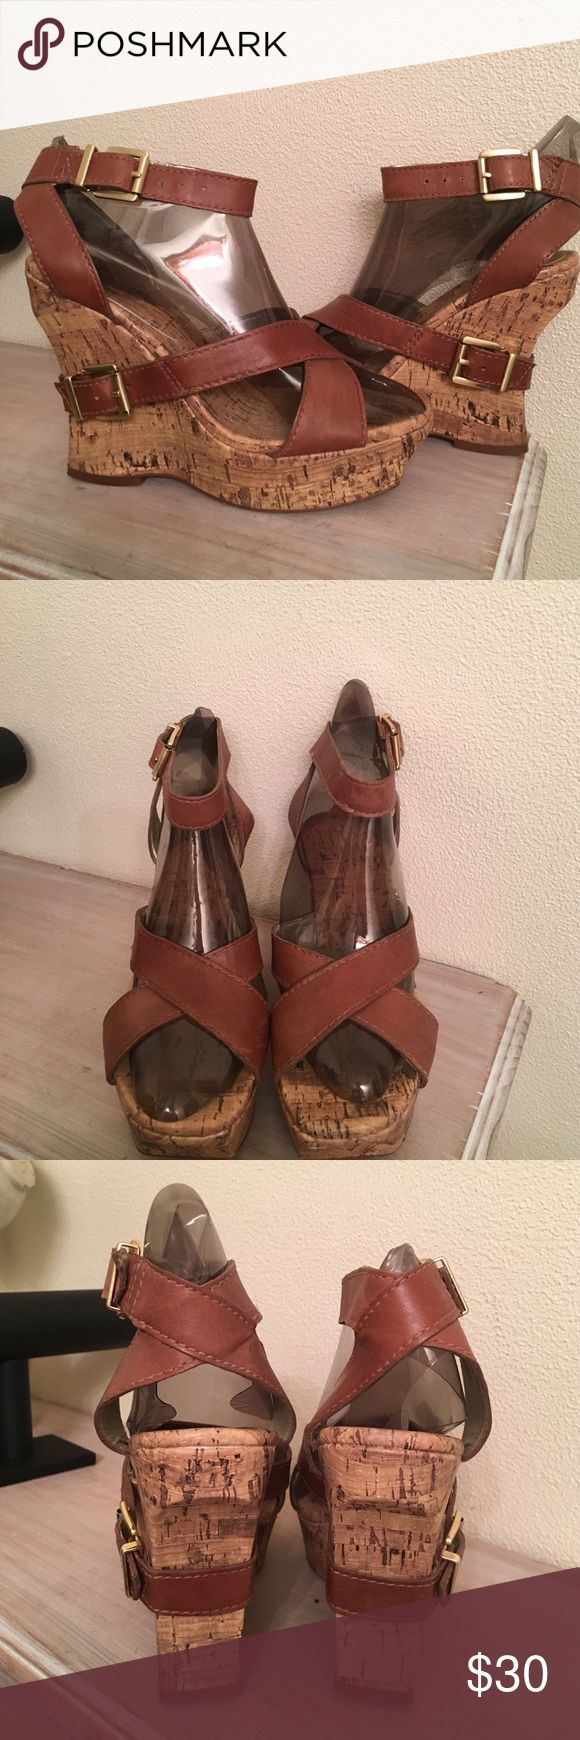 Jessica Simpson sandals Cute wedge shoes worn once.  They have adjustable ankle strap with cute buckle detail on cork wedge.  Wedge is 5 inches with 1 inch platform on the front. Jessica Simpson Shoes Sandals